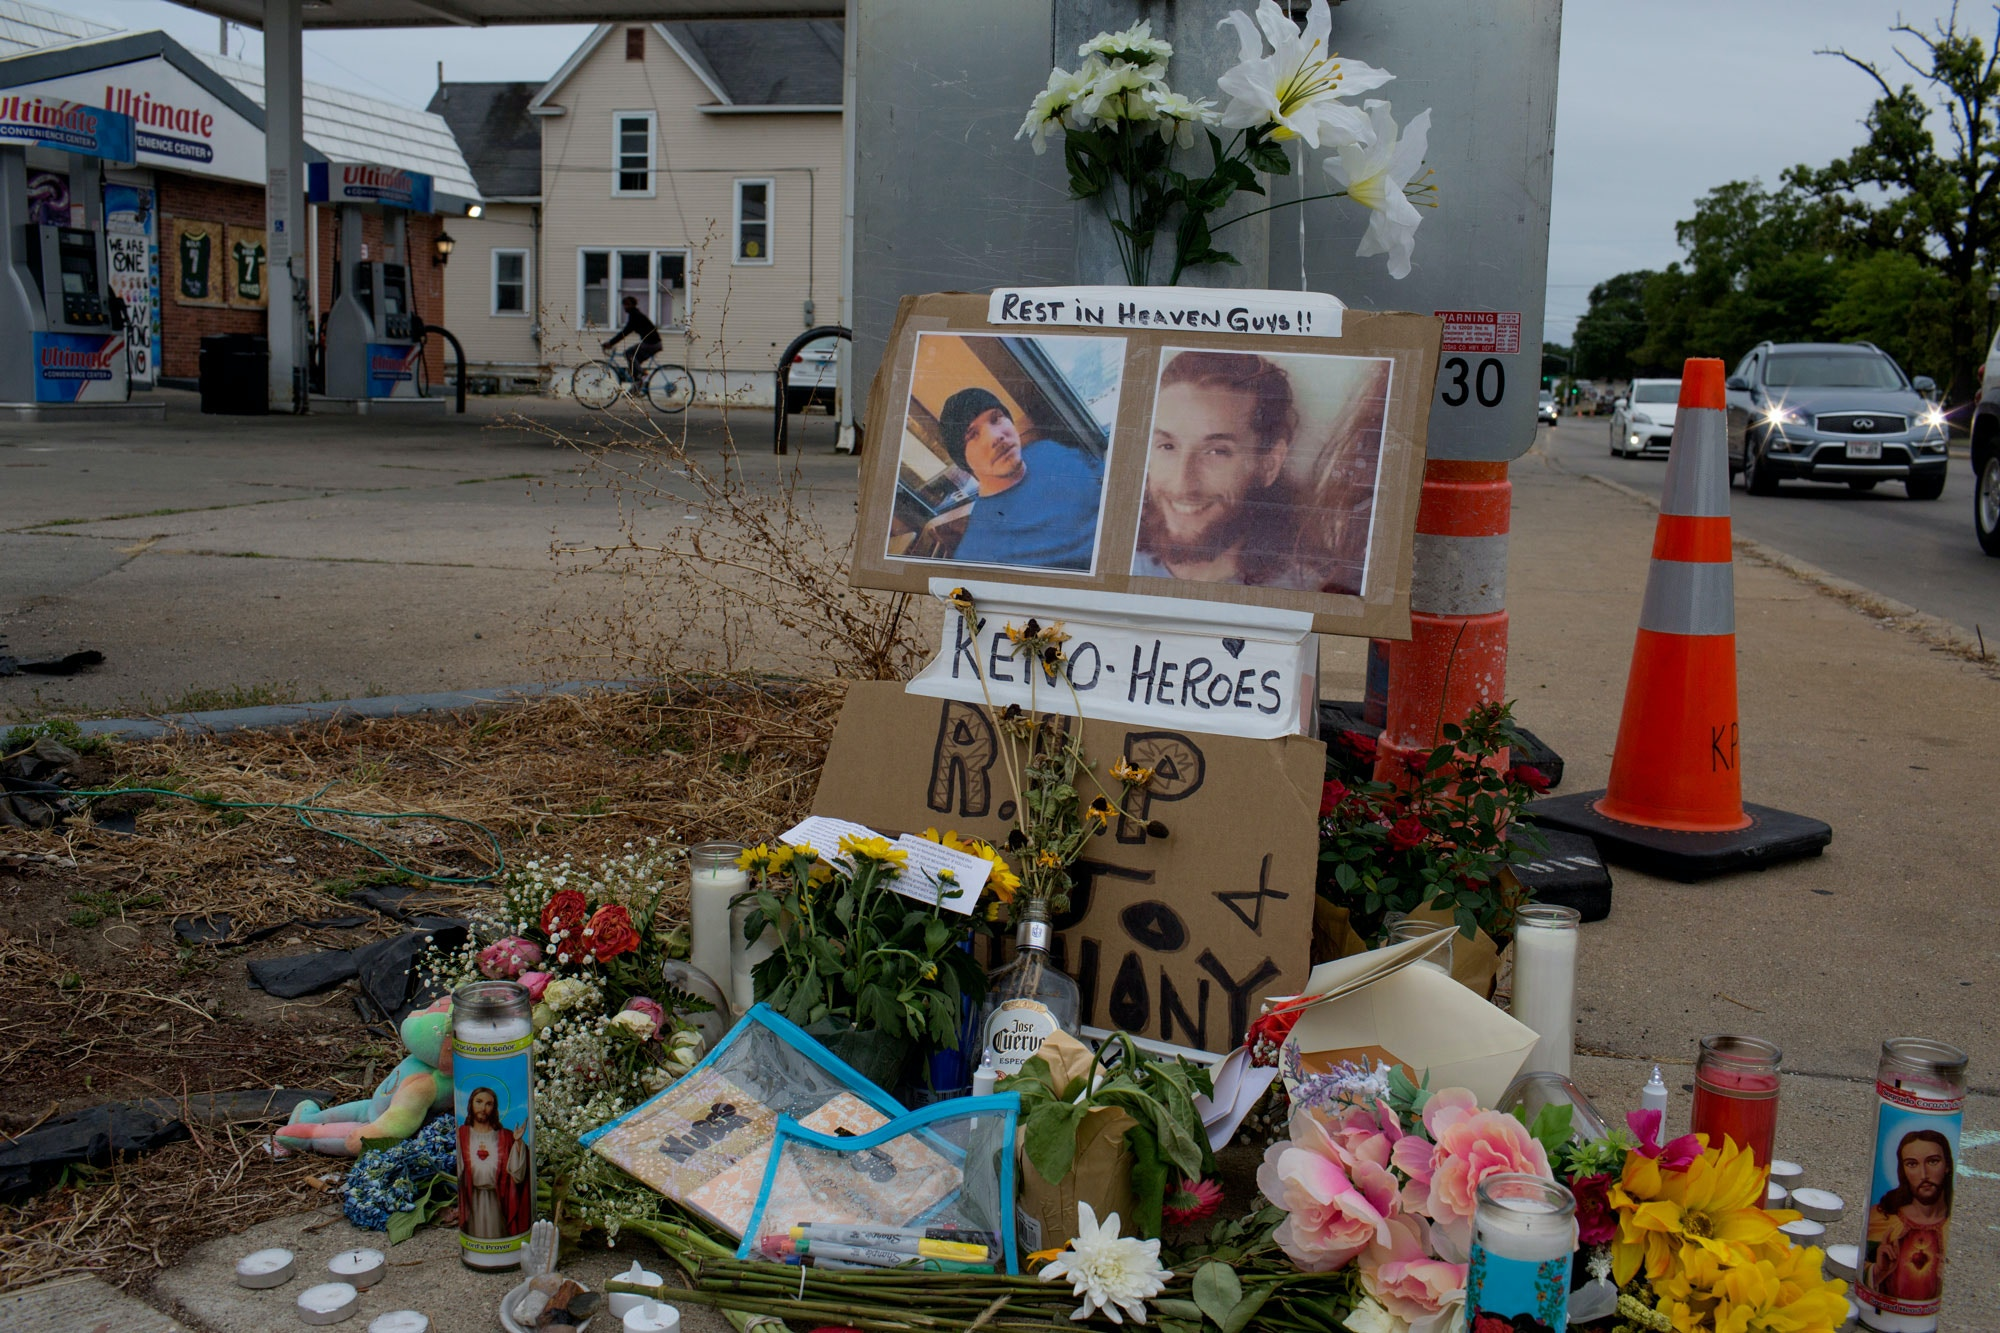 A small memorial decorates a lamp post near where Joseph Rosenbaum and Anthony Huber, two supporters of the Black Lives Matter movement, were shot and killed by a 17 year old militia member during a night of rioting, as seen on September 1, 2020, in Kenosha, Wisconsin.